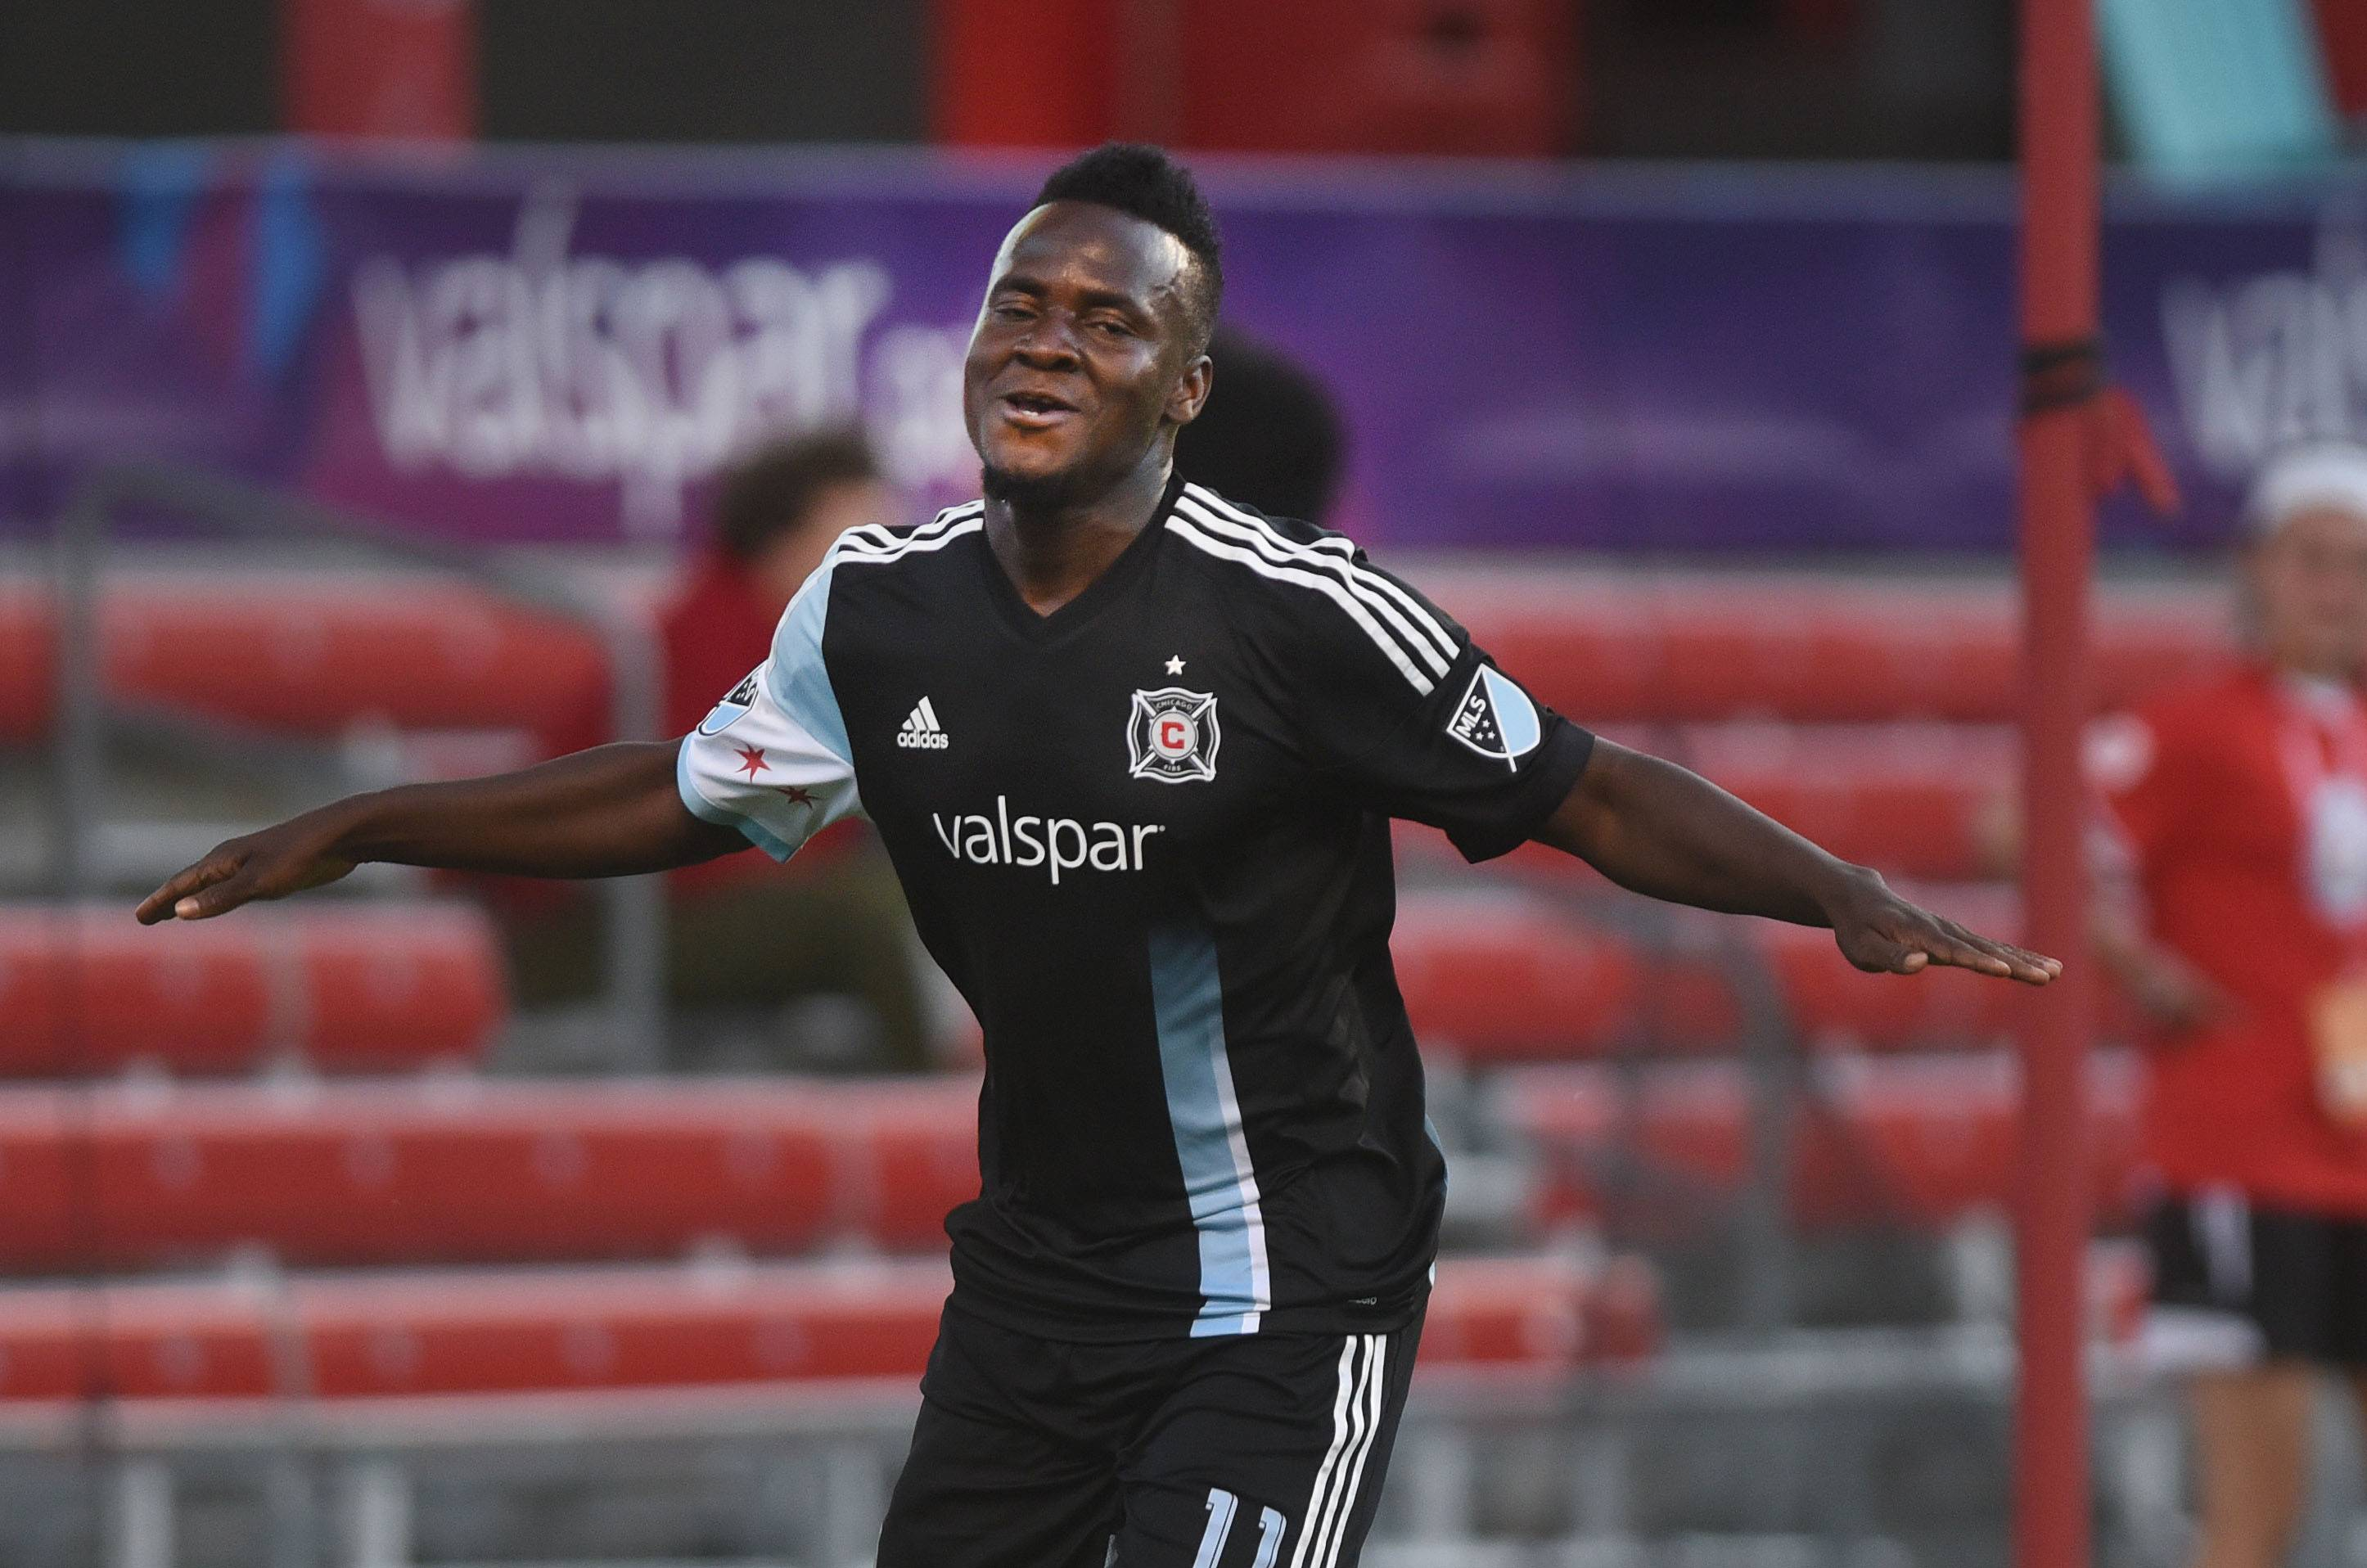 Chicago Fire forward David Accam is under contract for next season as a designated player, with a club option for 2018. But Accam and the club have been talking about a new deal.